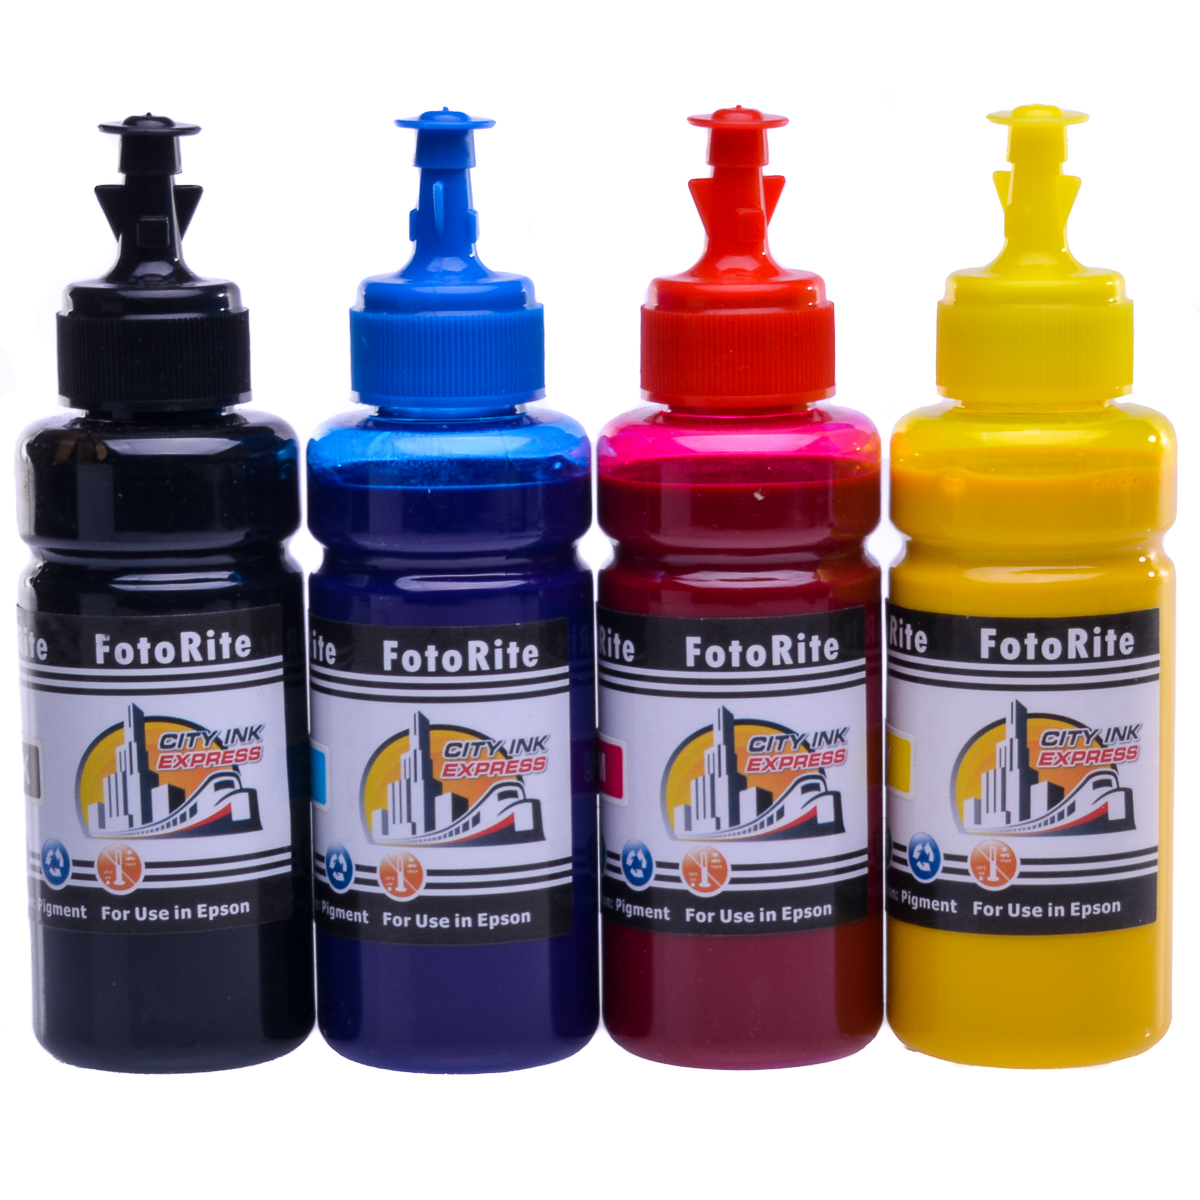 Cheap Multipack pigment ink refill replaces Epson XP-5105